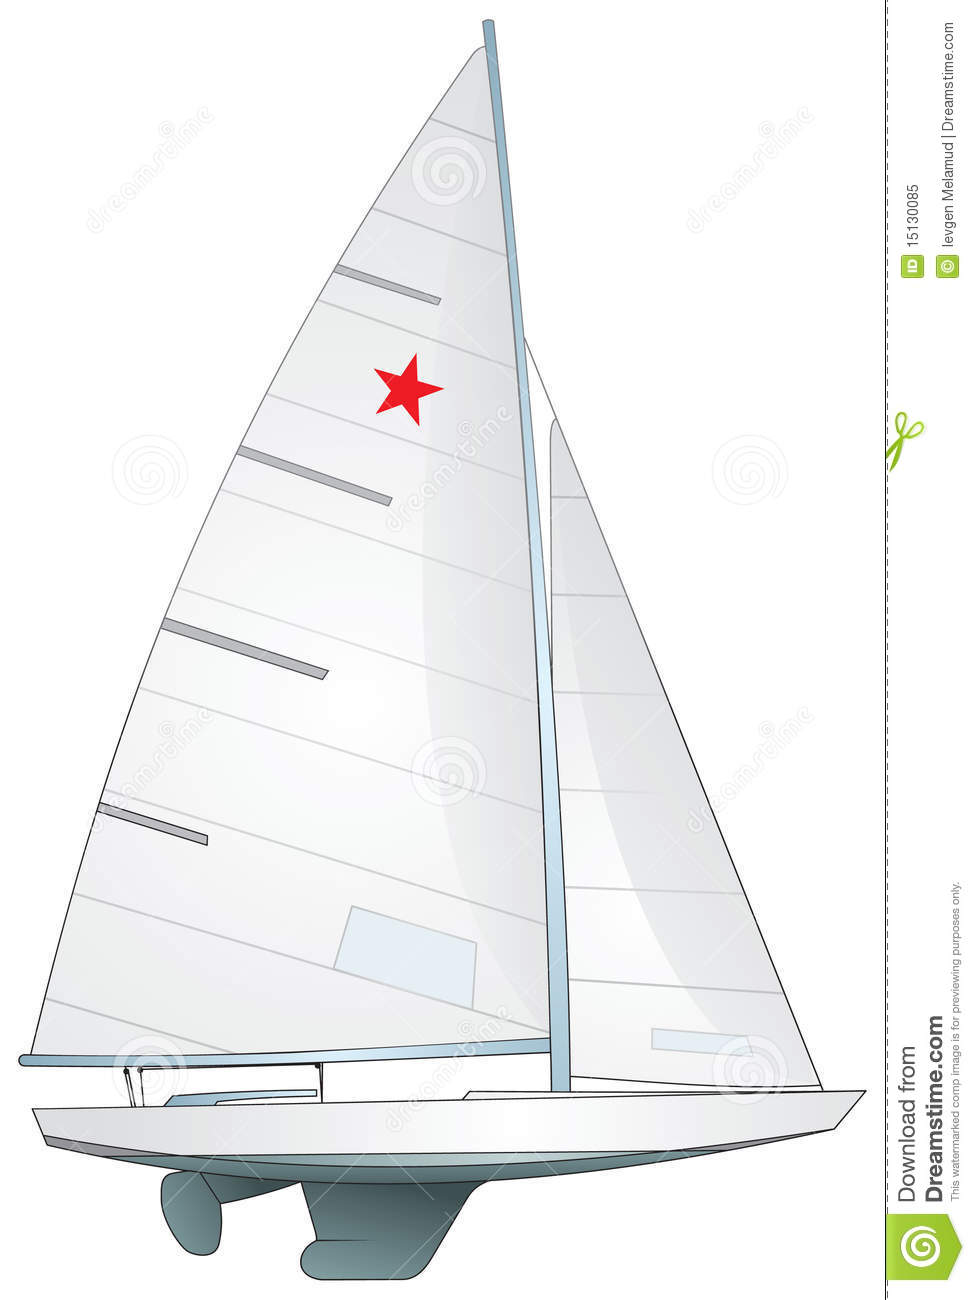 Sailboat. Star Class Yacht stock vector. Illustration of international - 15130085